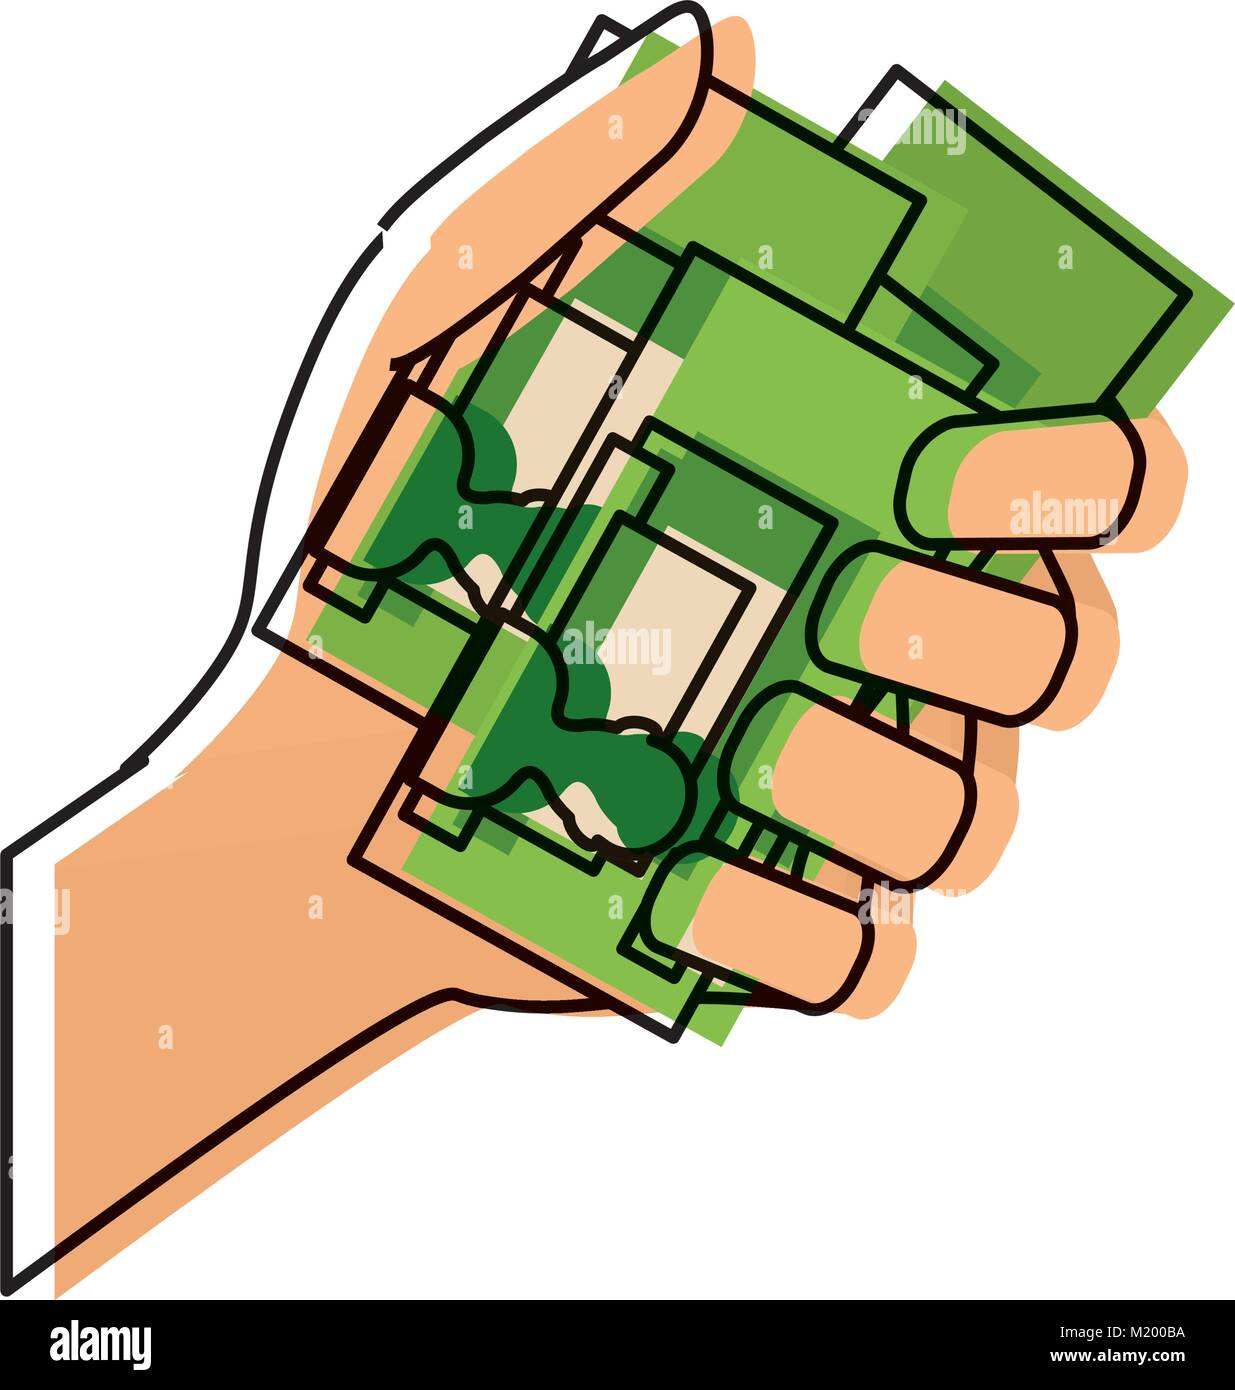 hand with id cards icon - Stock Image